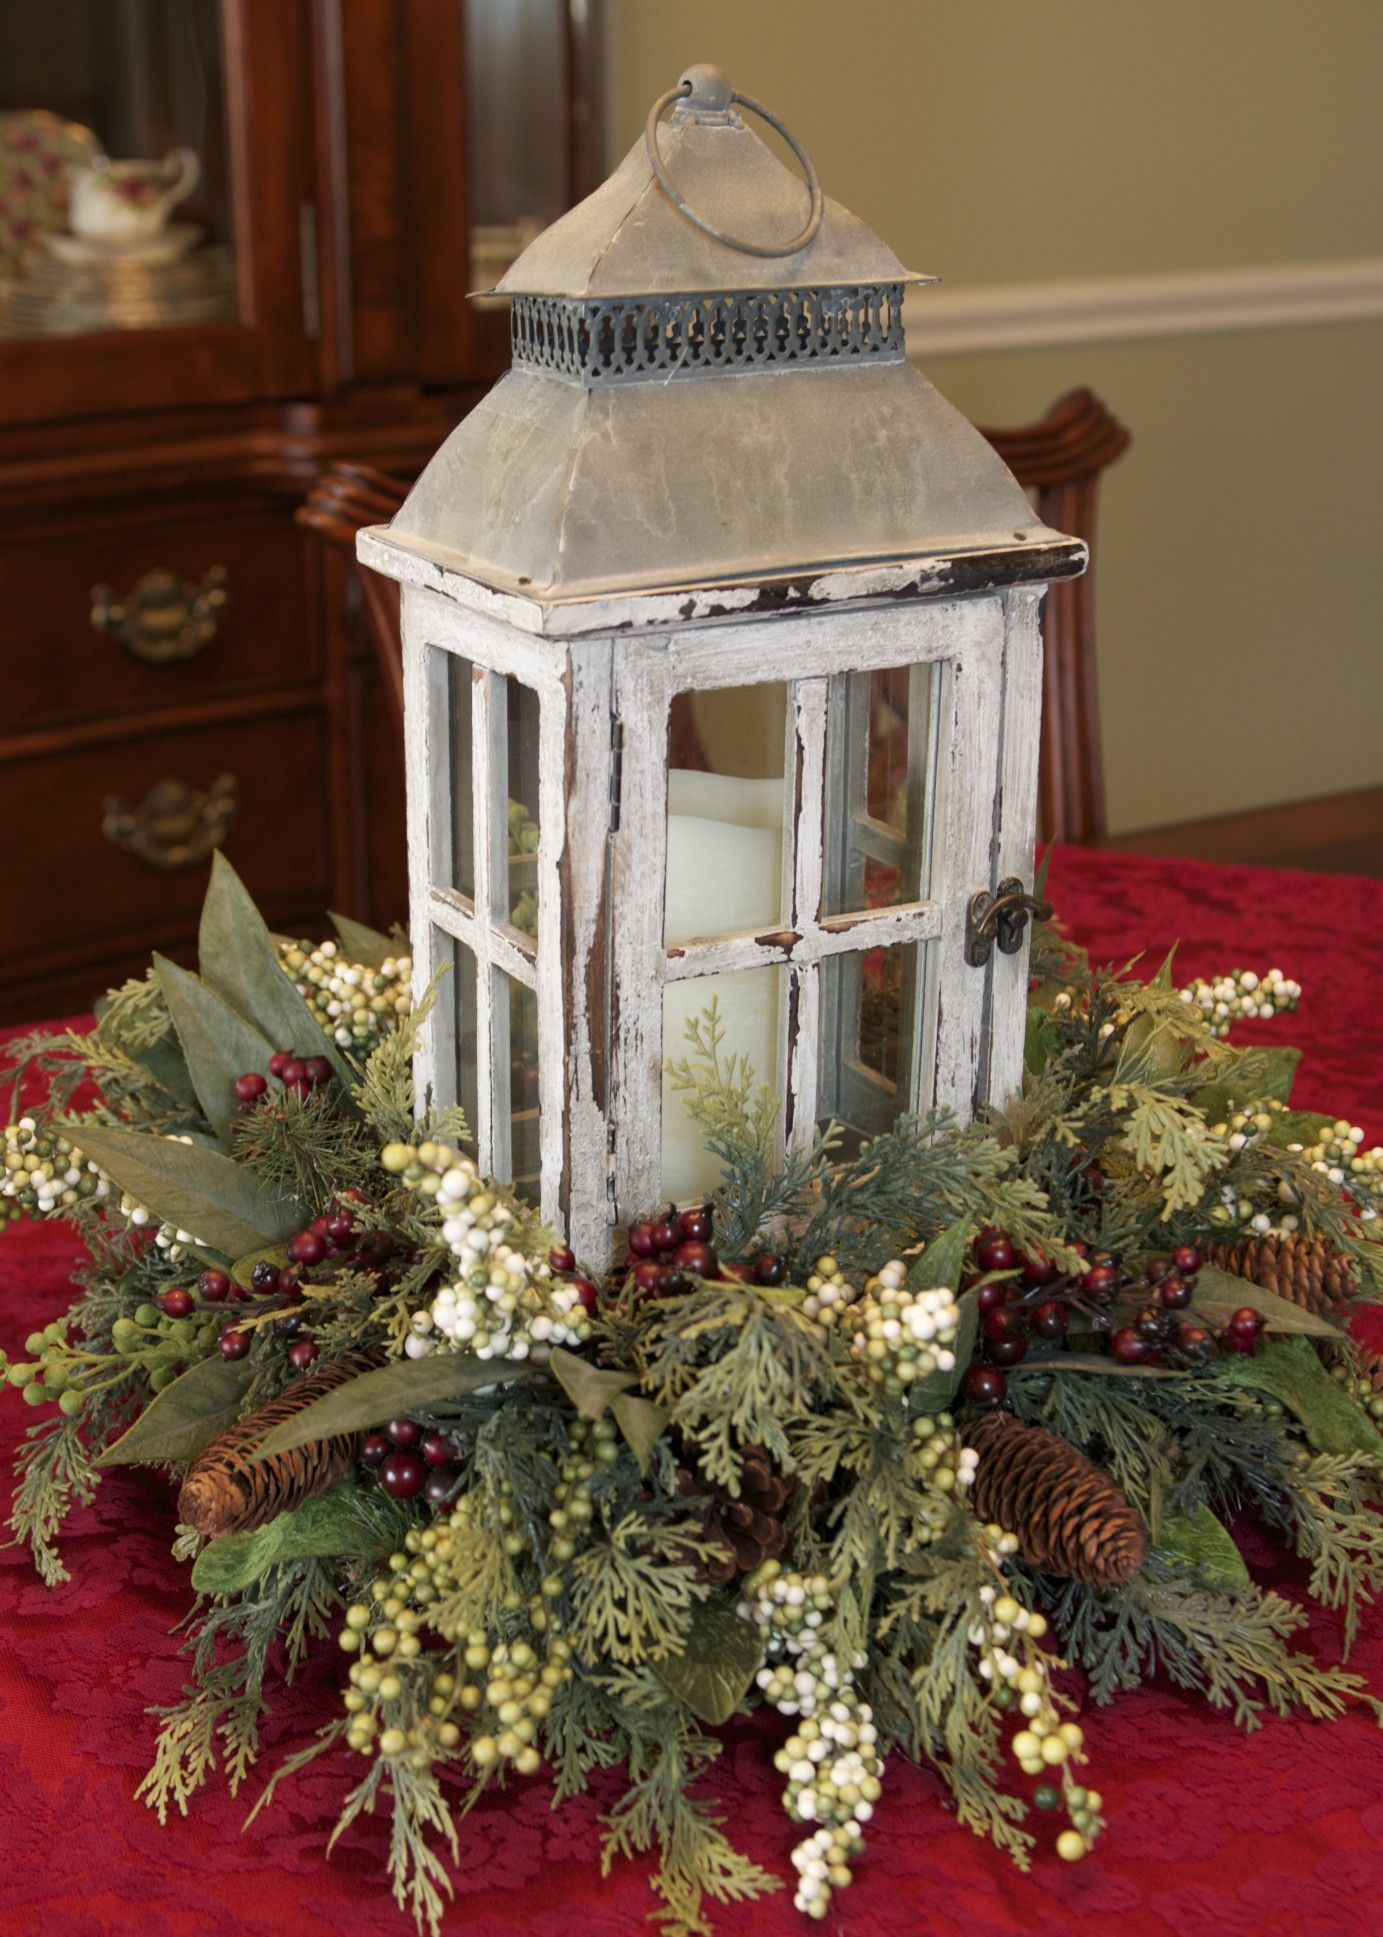 Winter Lantern Centerpiece by Linda Rosia